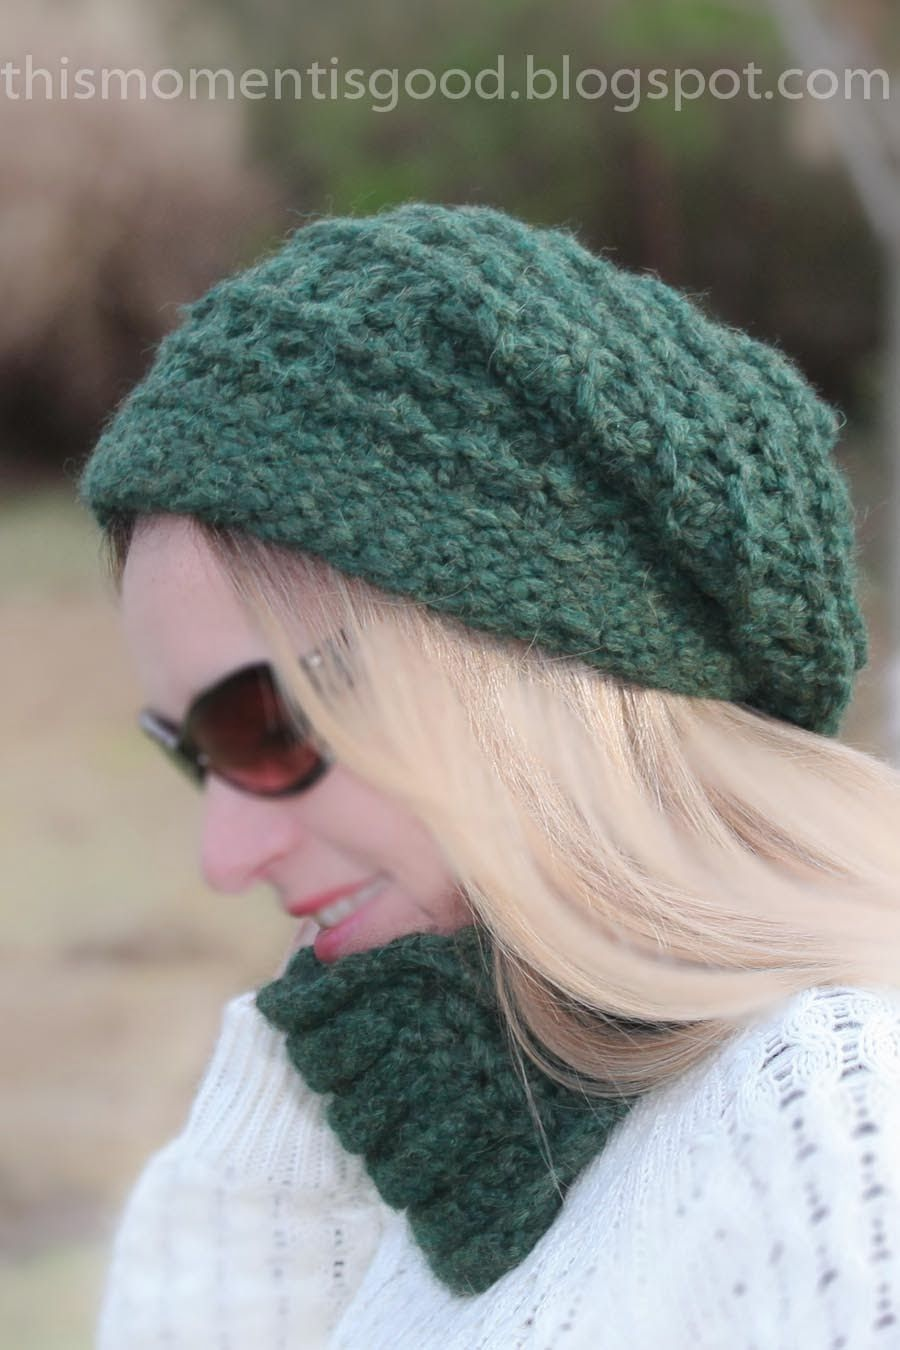 f8d1f537cdf Extra Warm and Oh So Soft in Baby Alpaca... Take your loom knitting to the  next level with this luxurious hat and cowl set! This make.